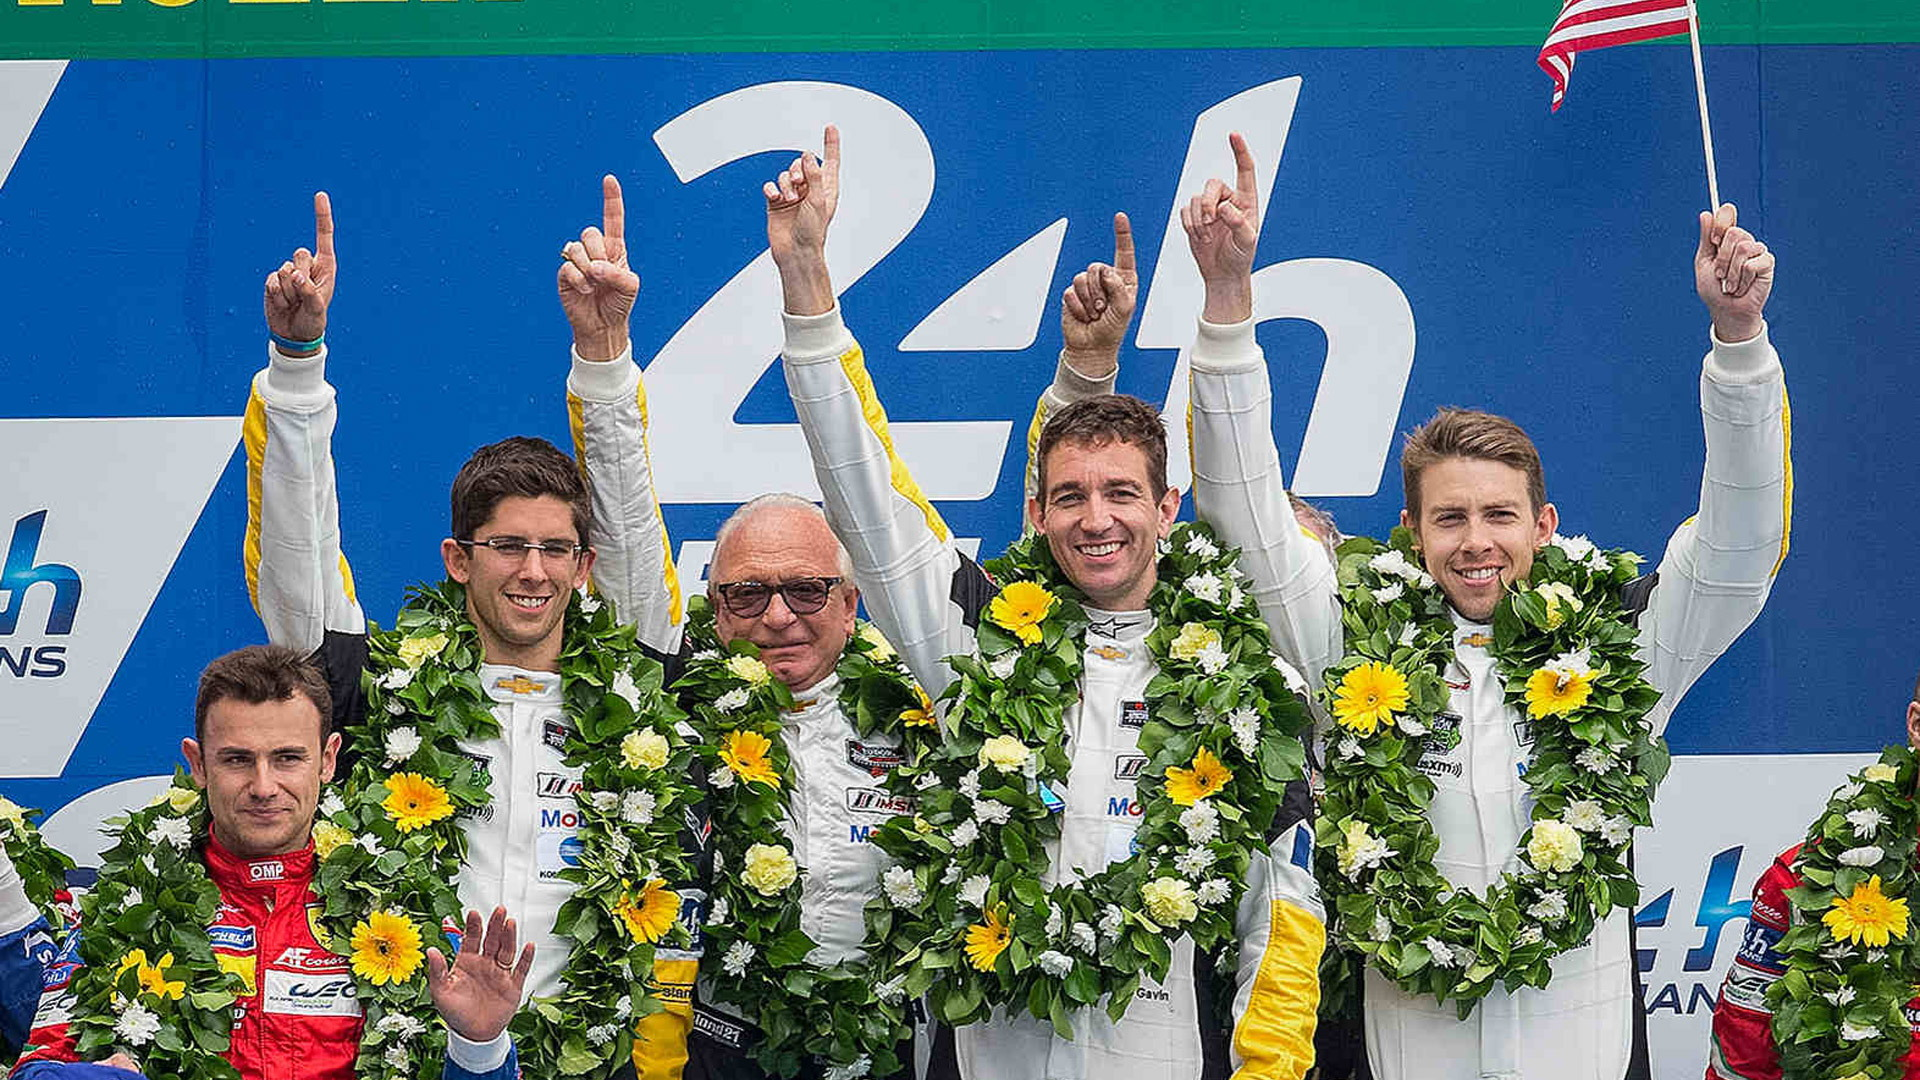 From left to right: Oliver Gavin, Tommy Milner & Jordan Taylor after 24 Hours of Le Mans class win